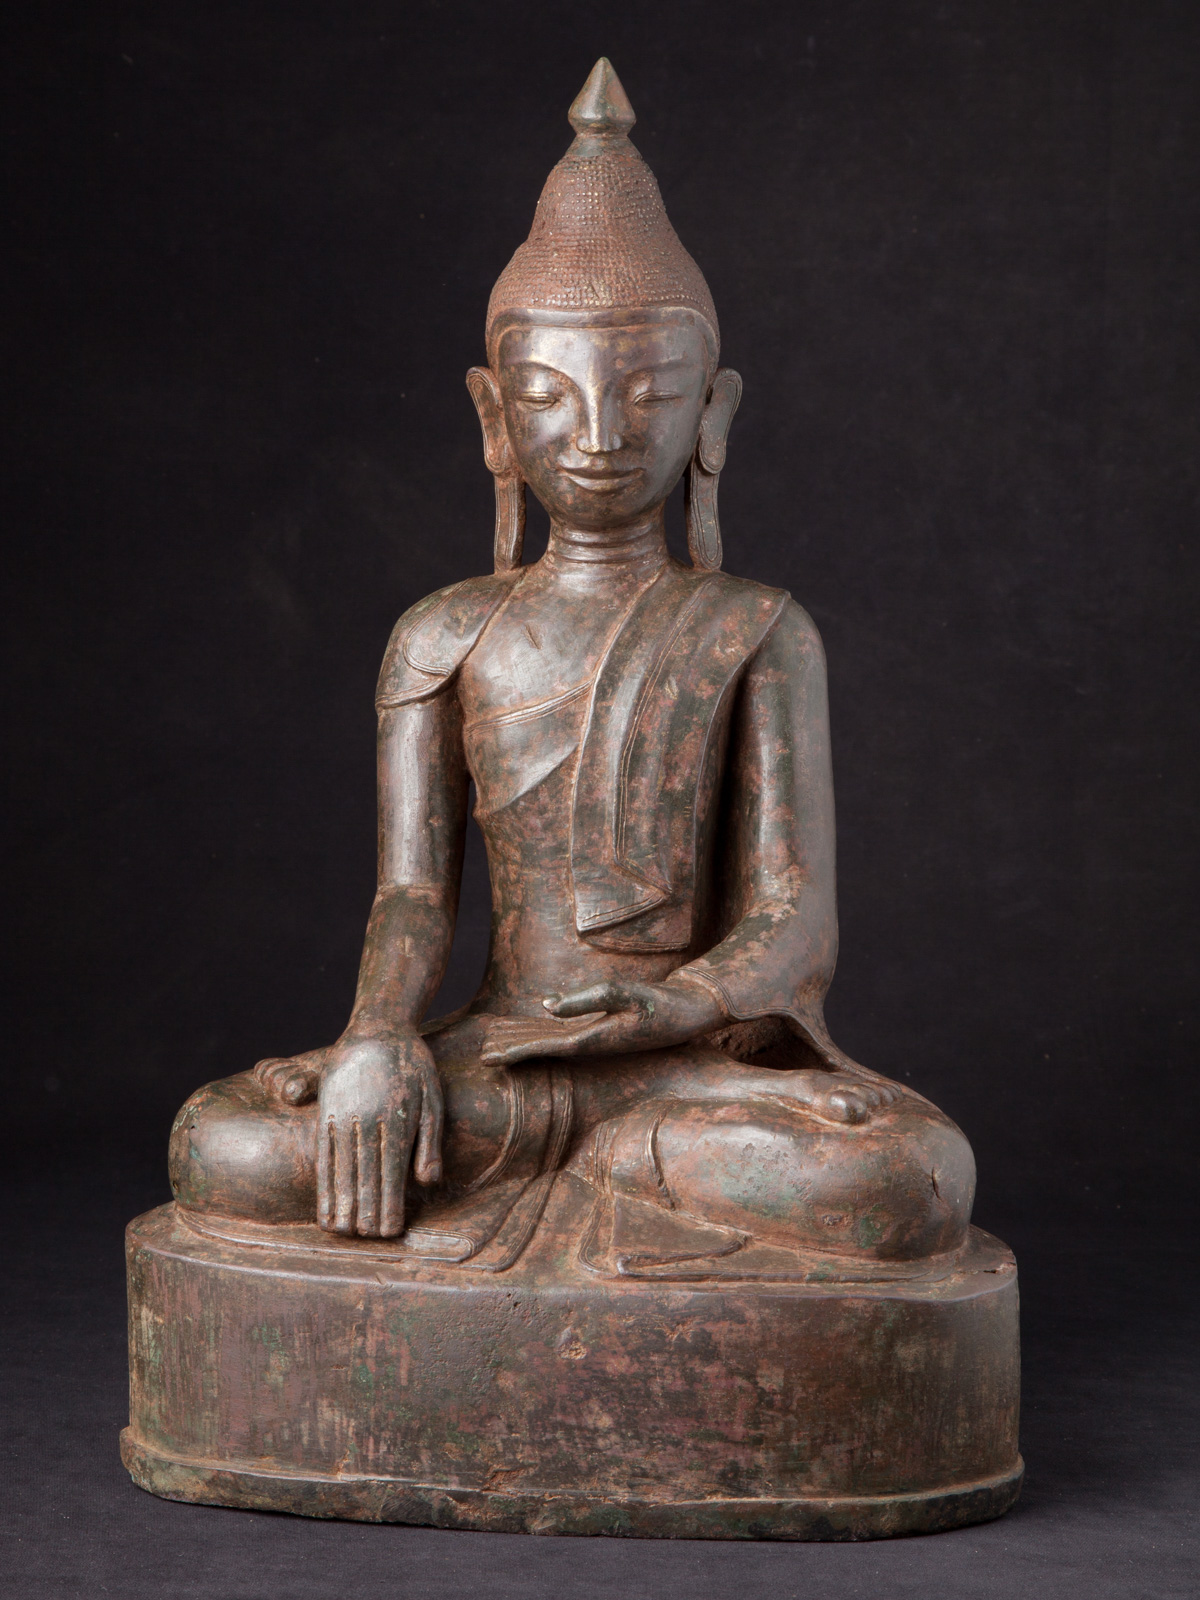 Special antique bronze Ava Buddha statue from Burma